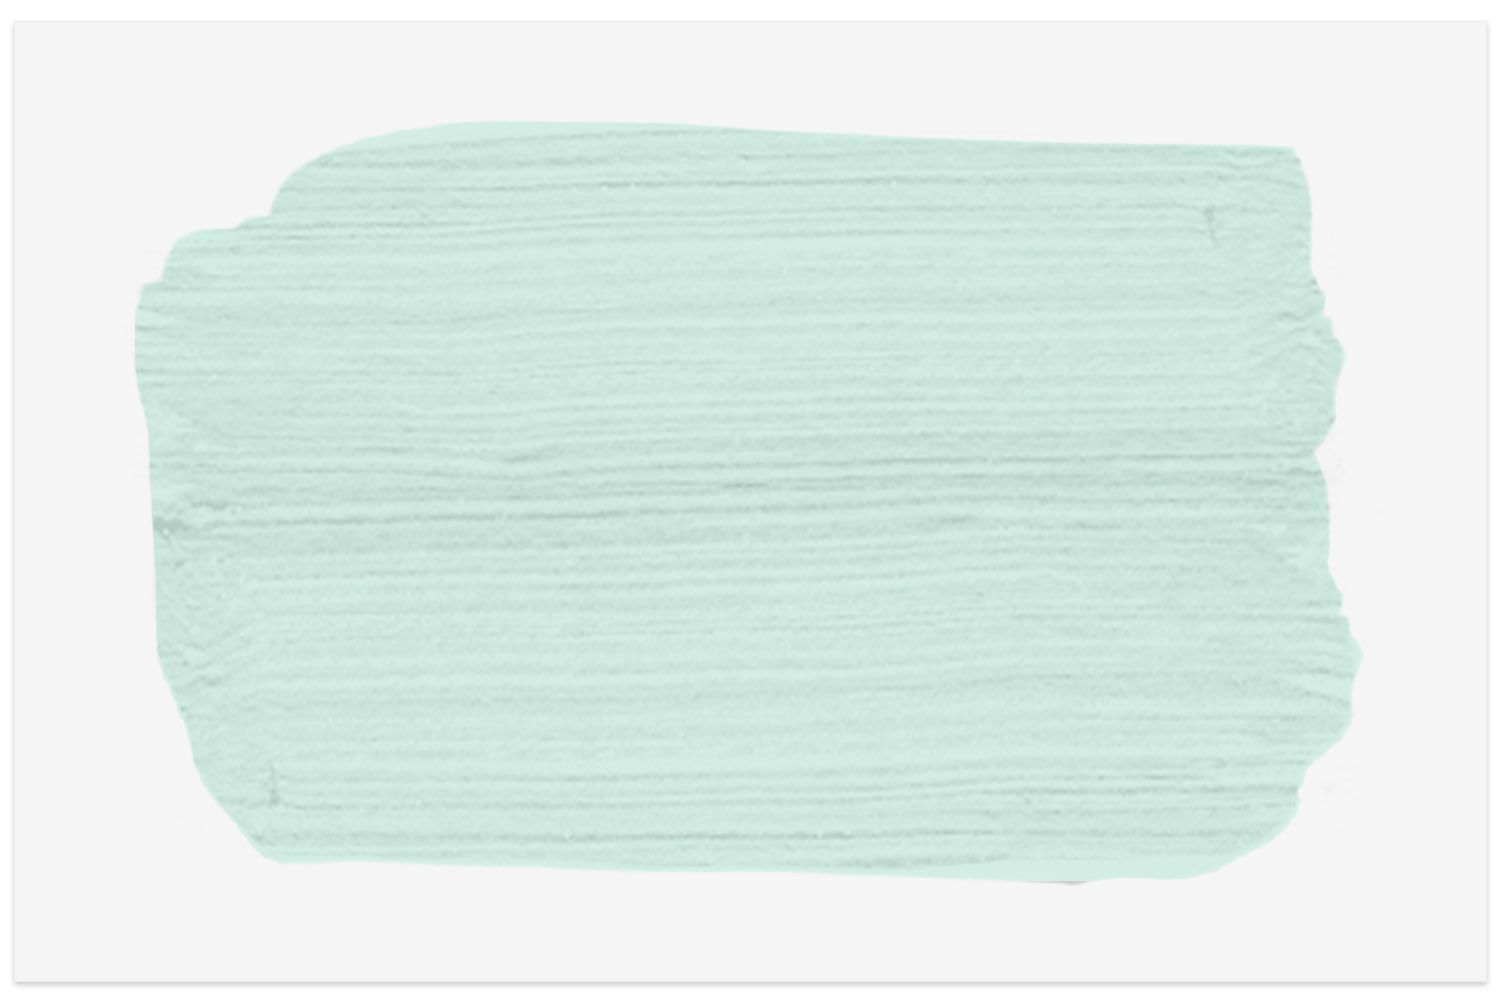 Soft Mint MD-19 paint swatch from Behr